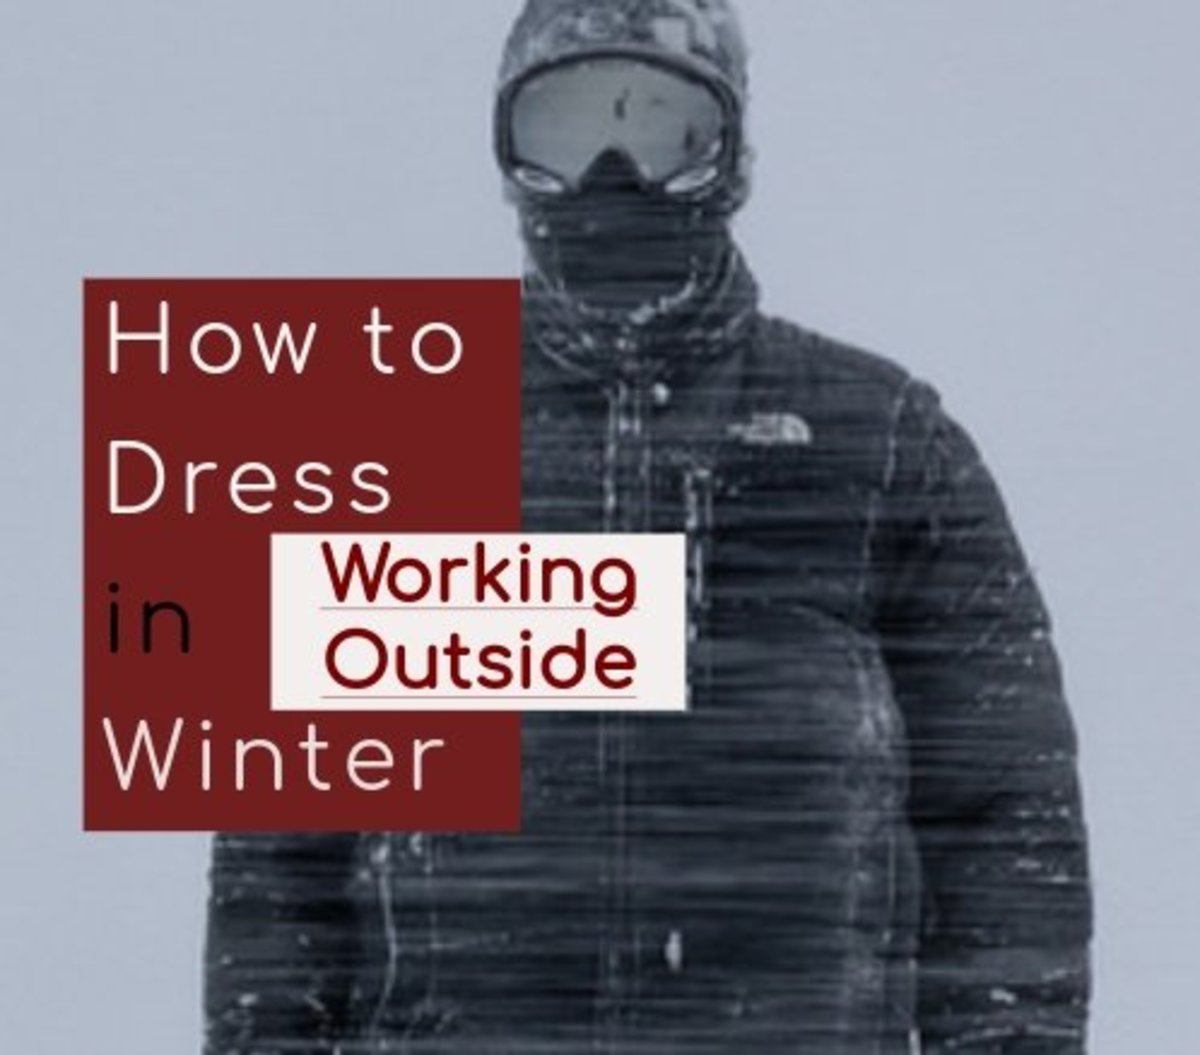 With layering tricks and new tech, it's easy to learn to stay warm when working in winter weather.